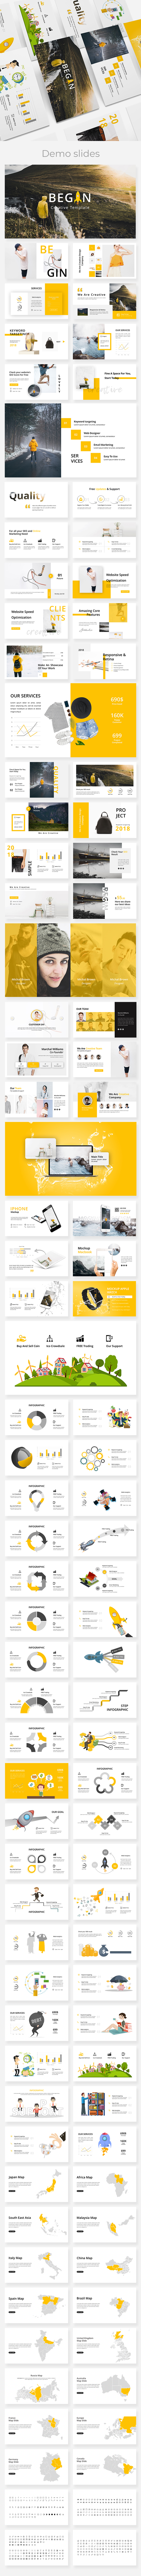 Begin Creative Powerpoint Template - Creative PowerPoint Templates